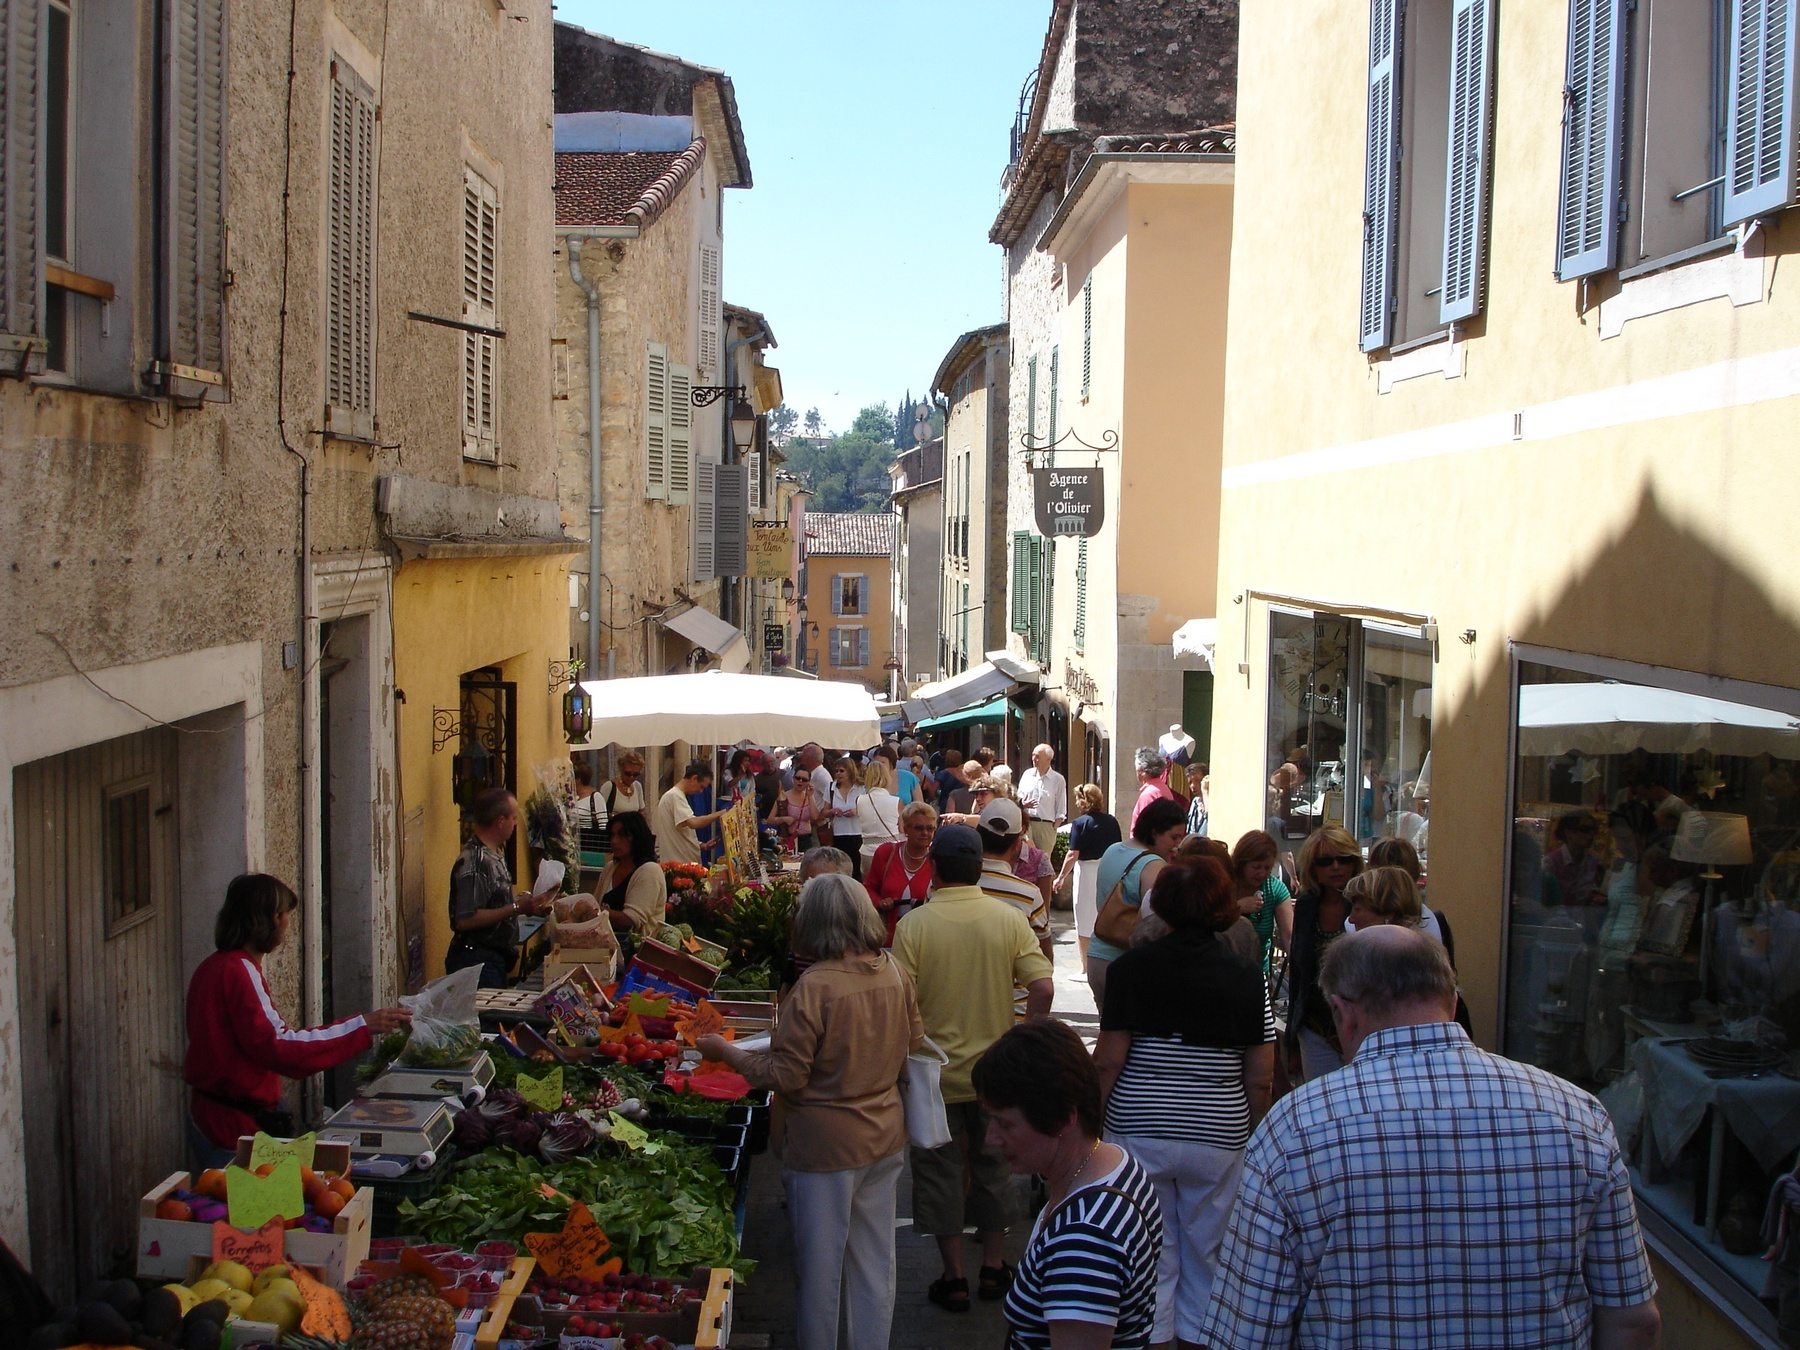 Friday market in Valbonne - Cote d'Azur South of France